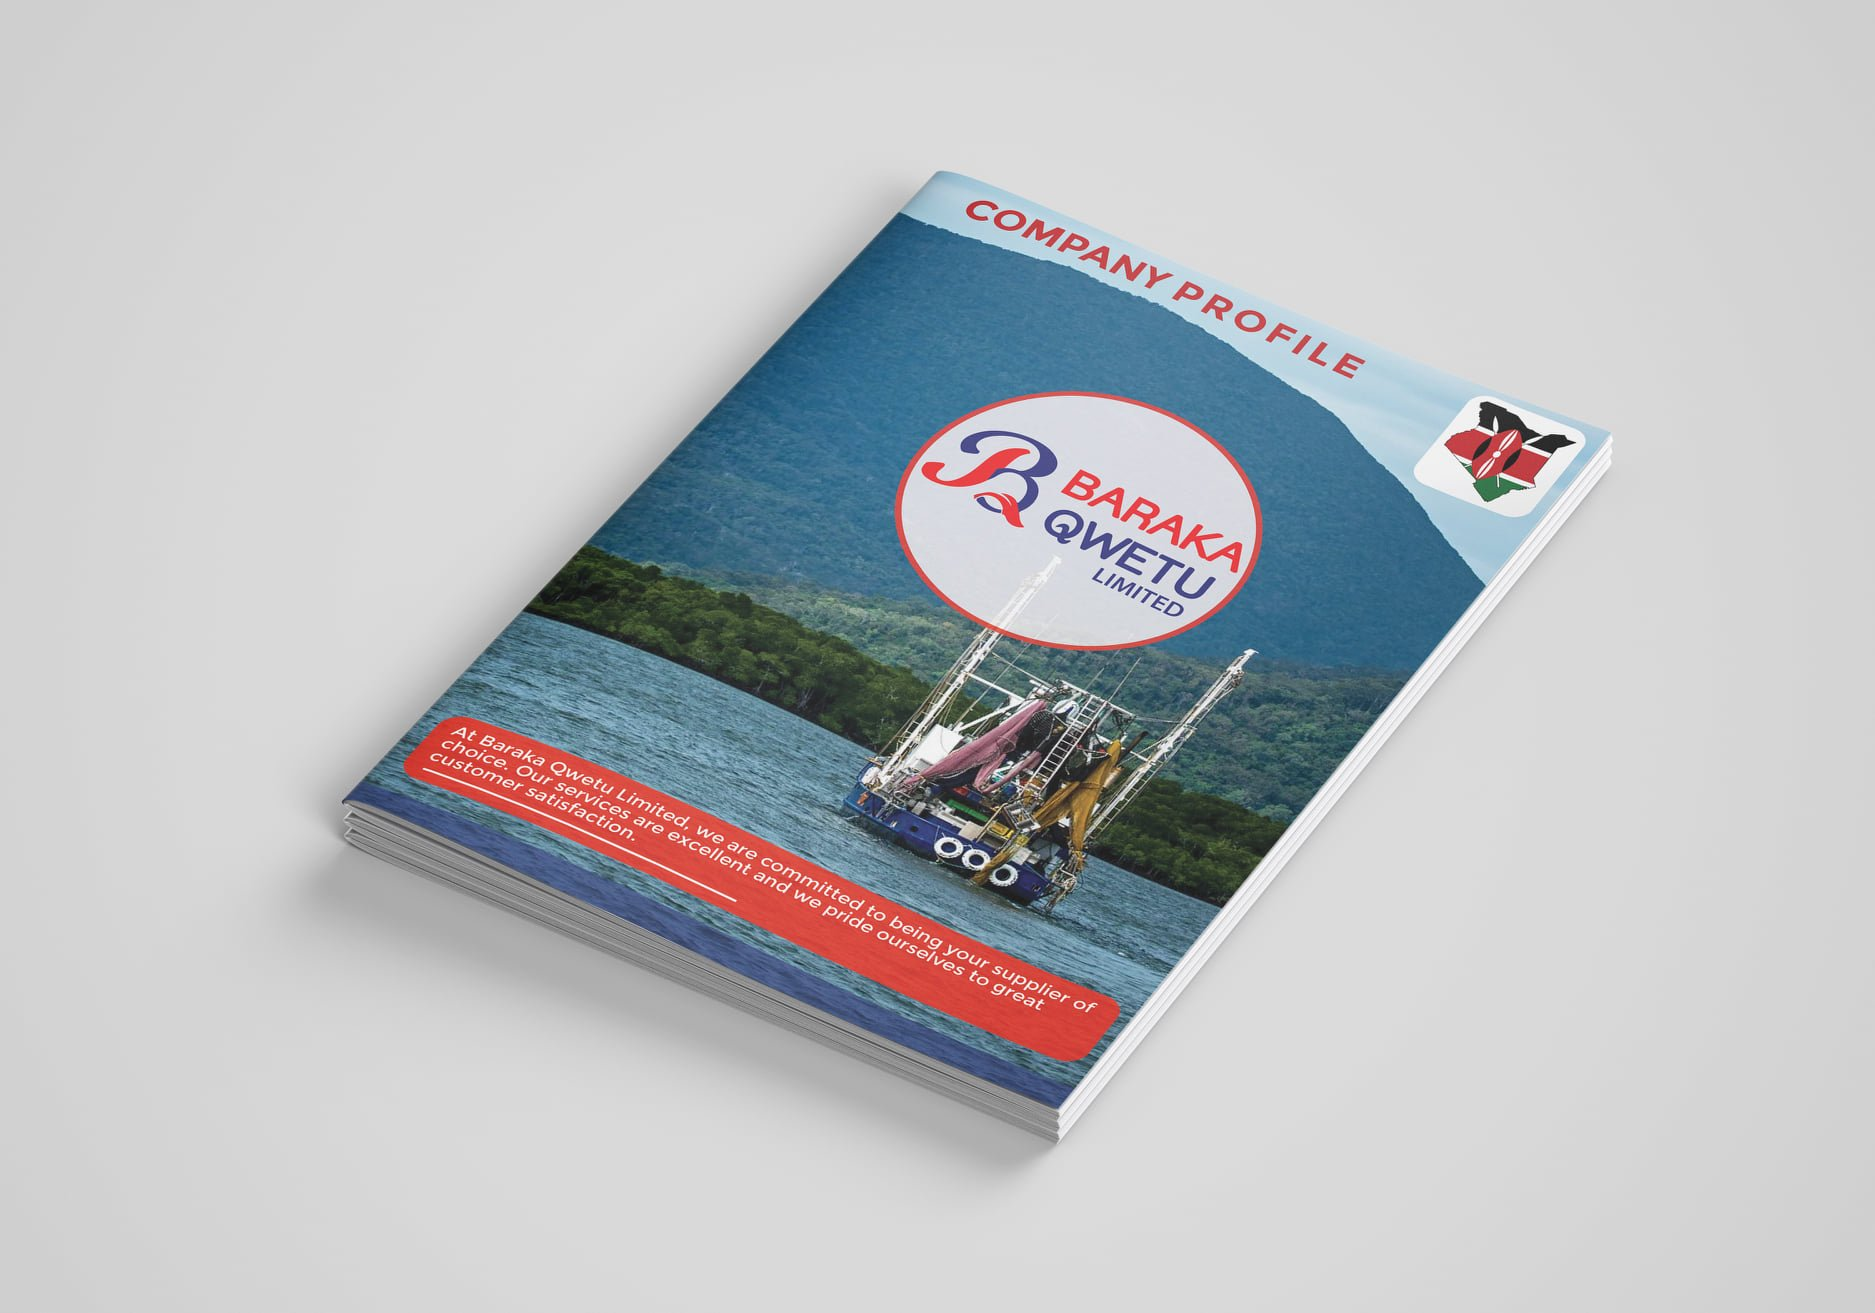 Peasner will design your product and services in an appealing and clearly arranged layout for your Catalog / Company Profile in Kenya